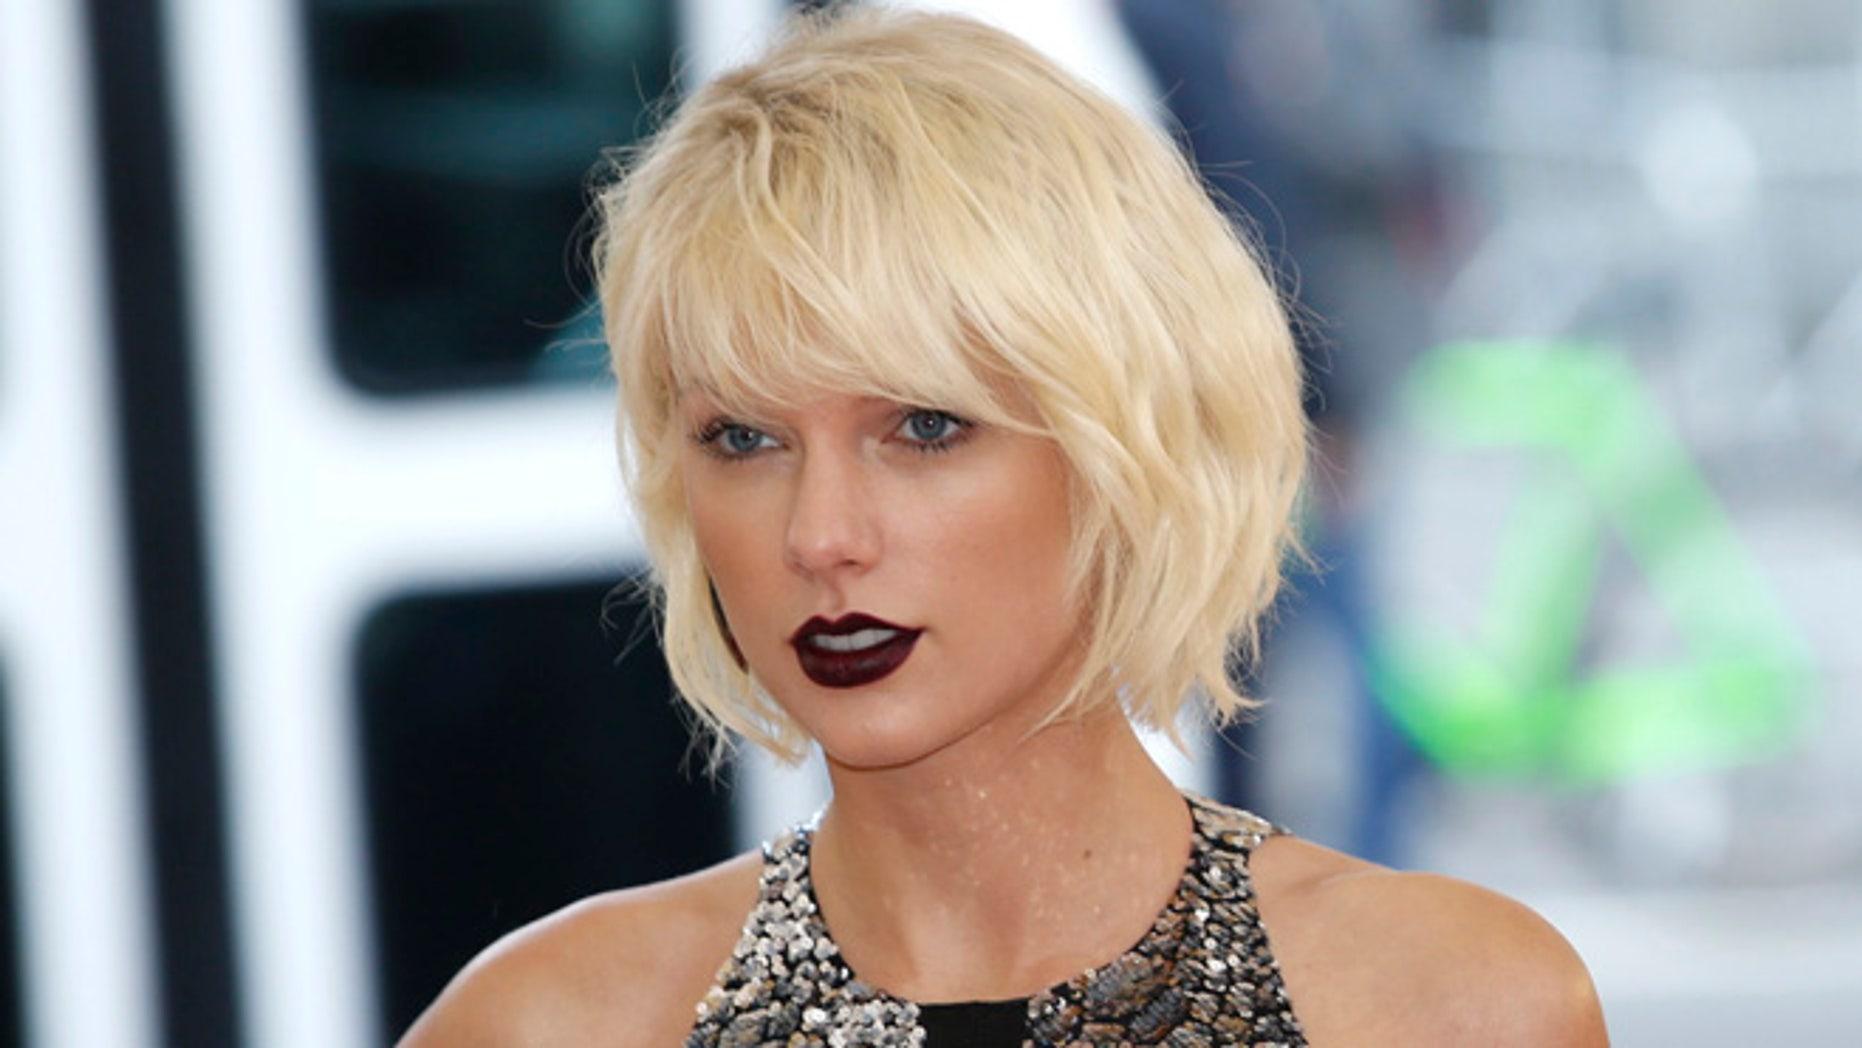 Taylor Swift donated the remainder of a pledge to Louisiana flood victims